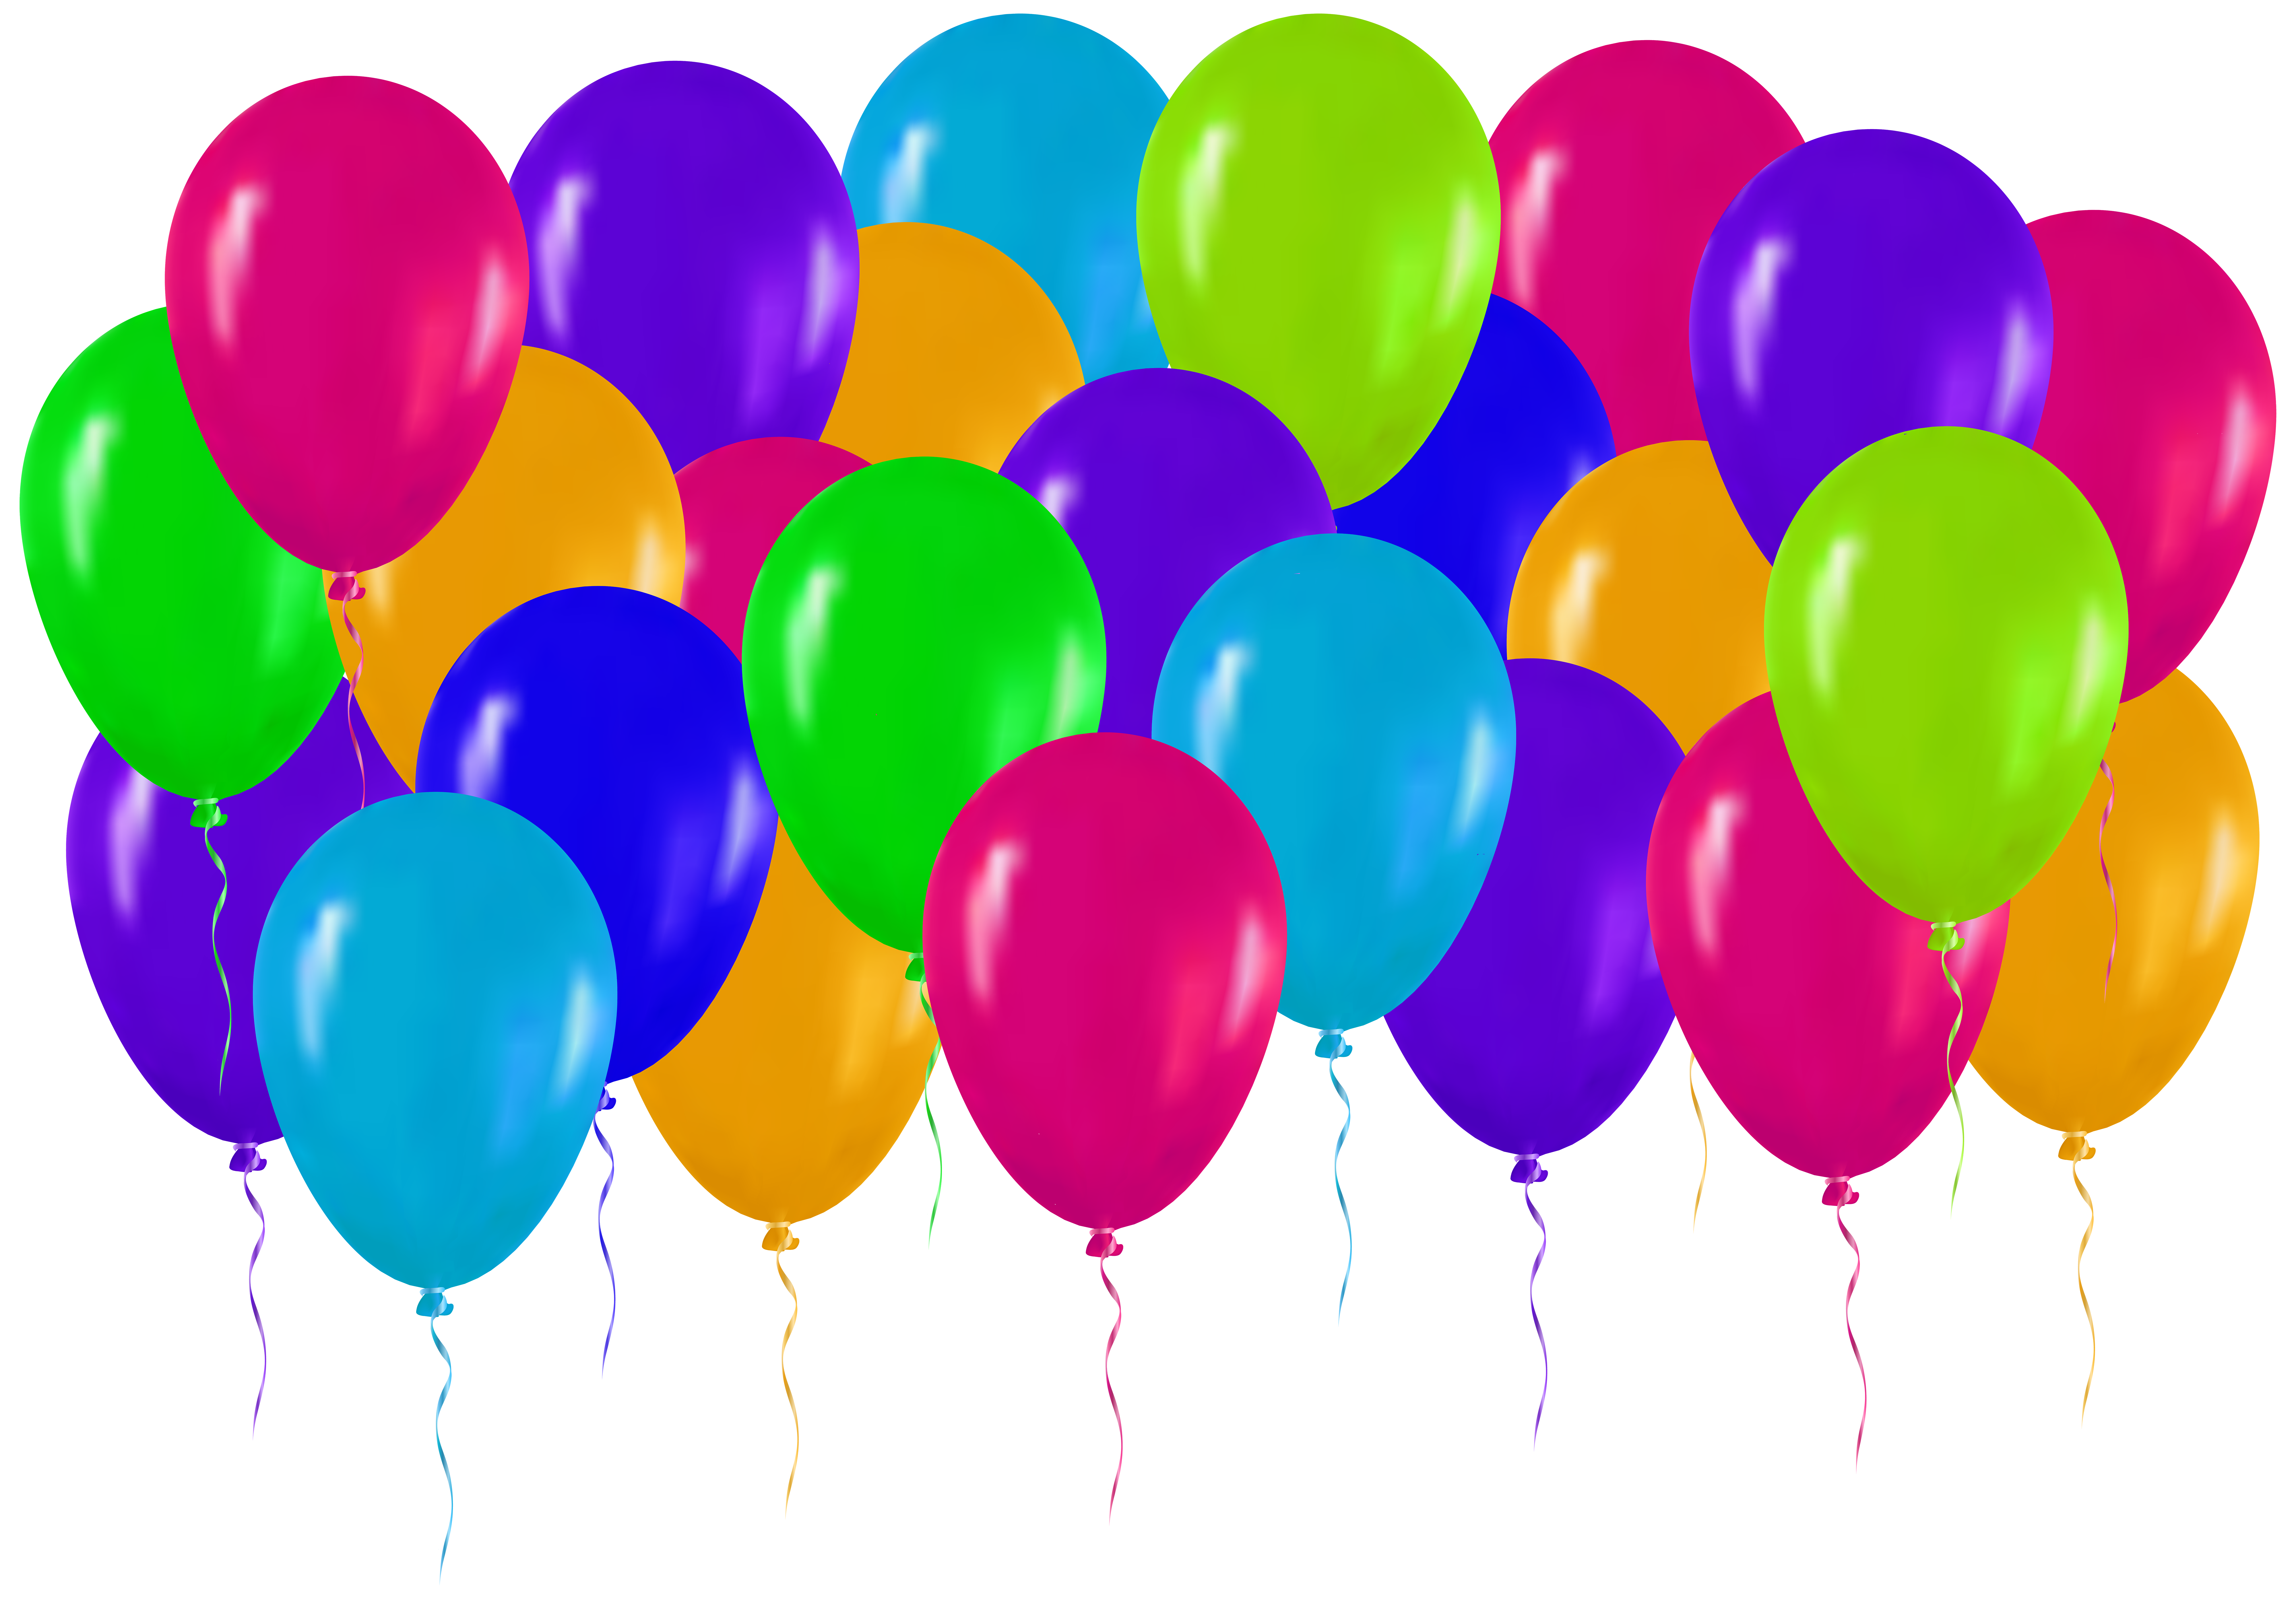 Grand opening balloons png. Colorful clip art best